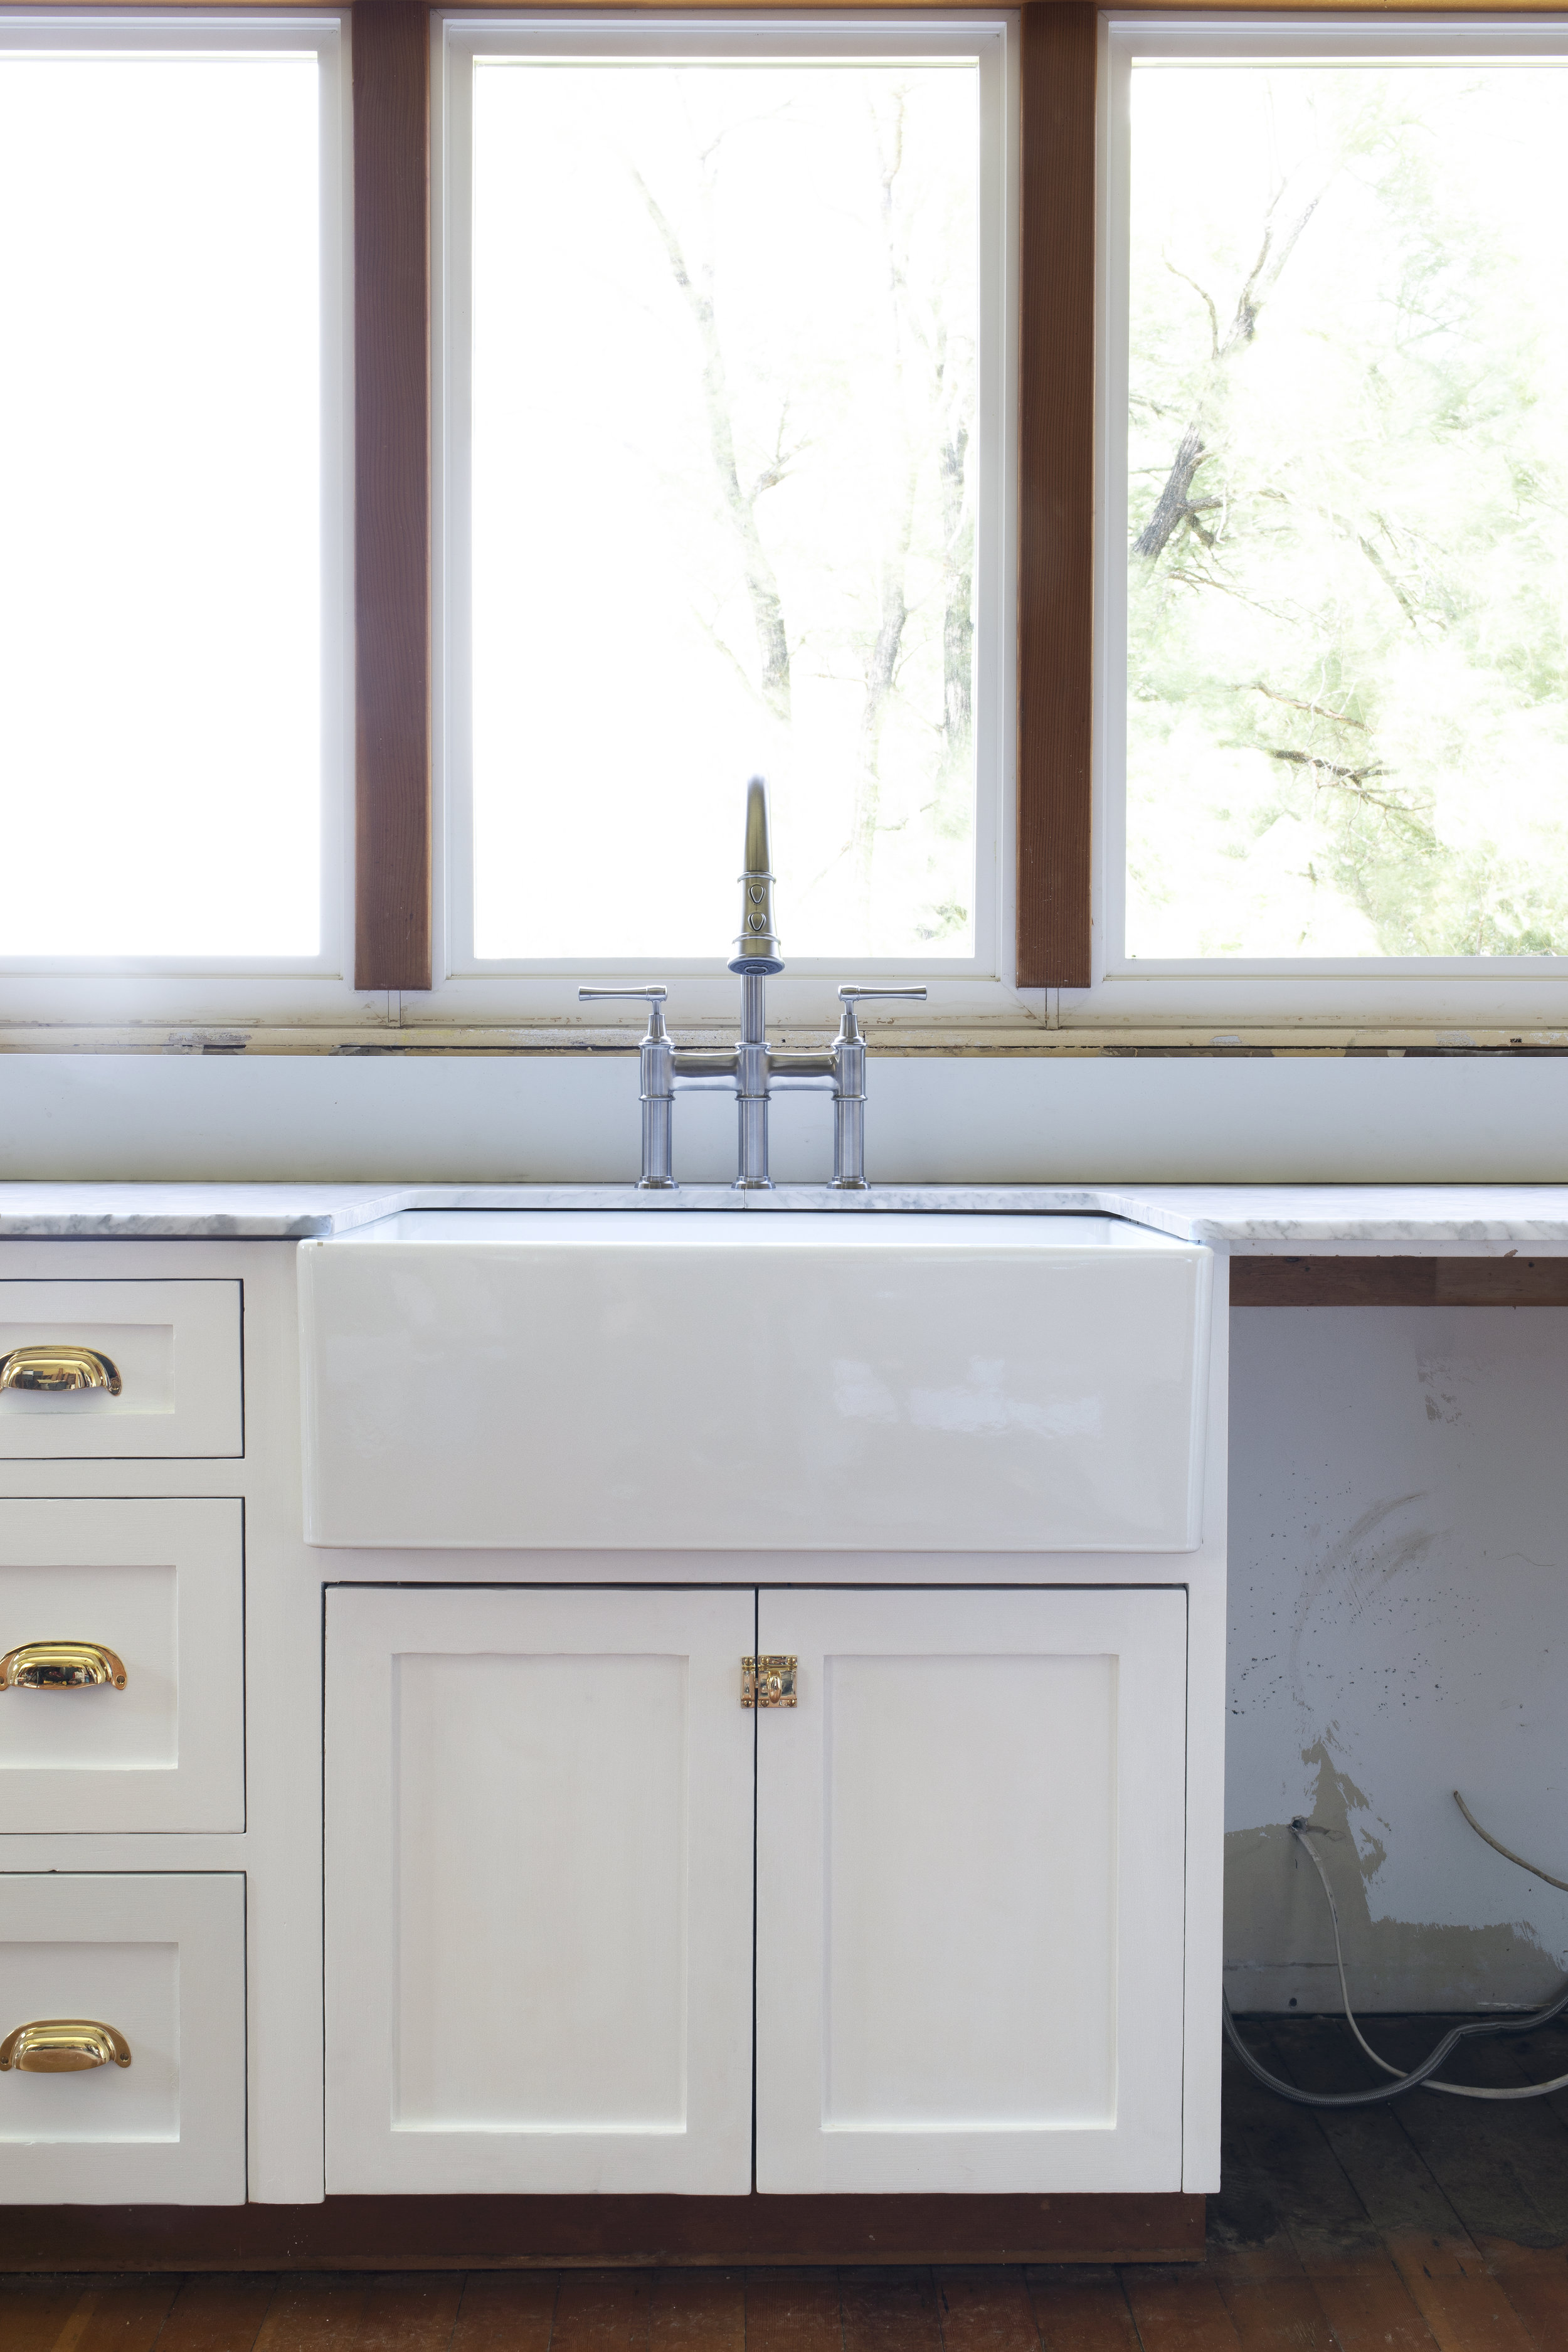 The Grit and Polish - Farmhouse Kitchen Update Elkay Sink + Faucet 1.2.jpg